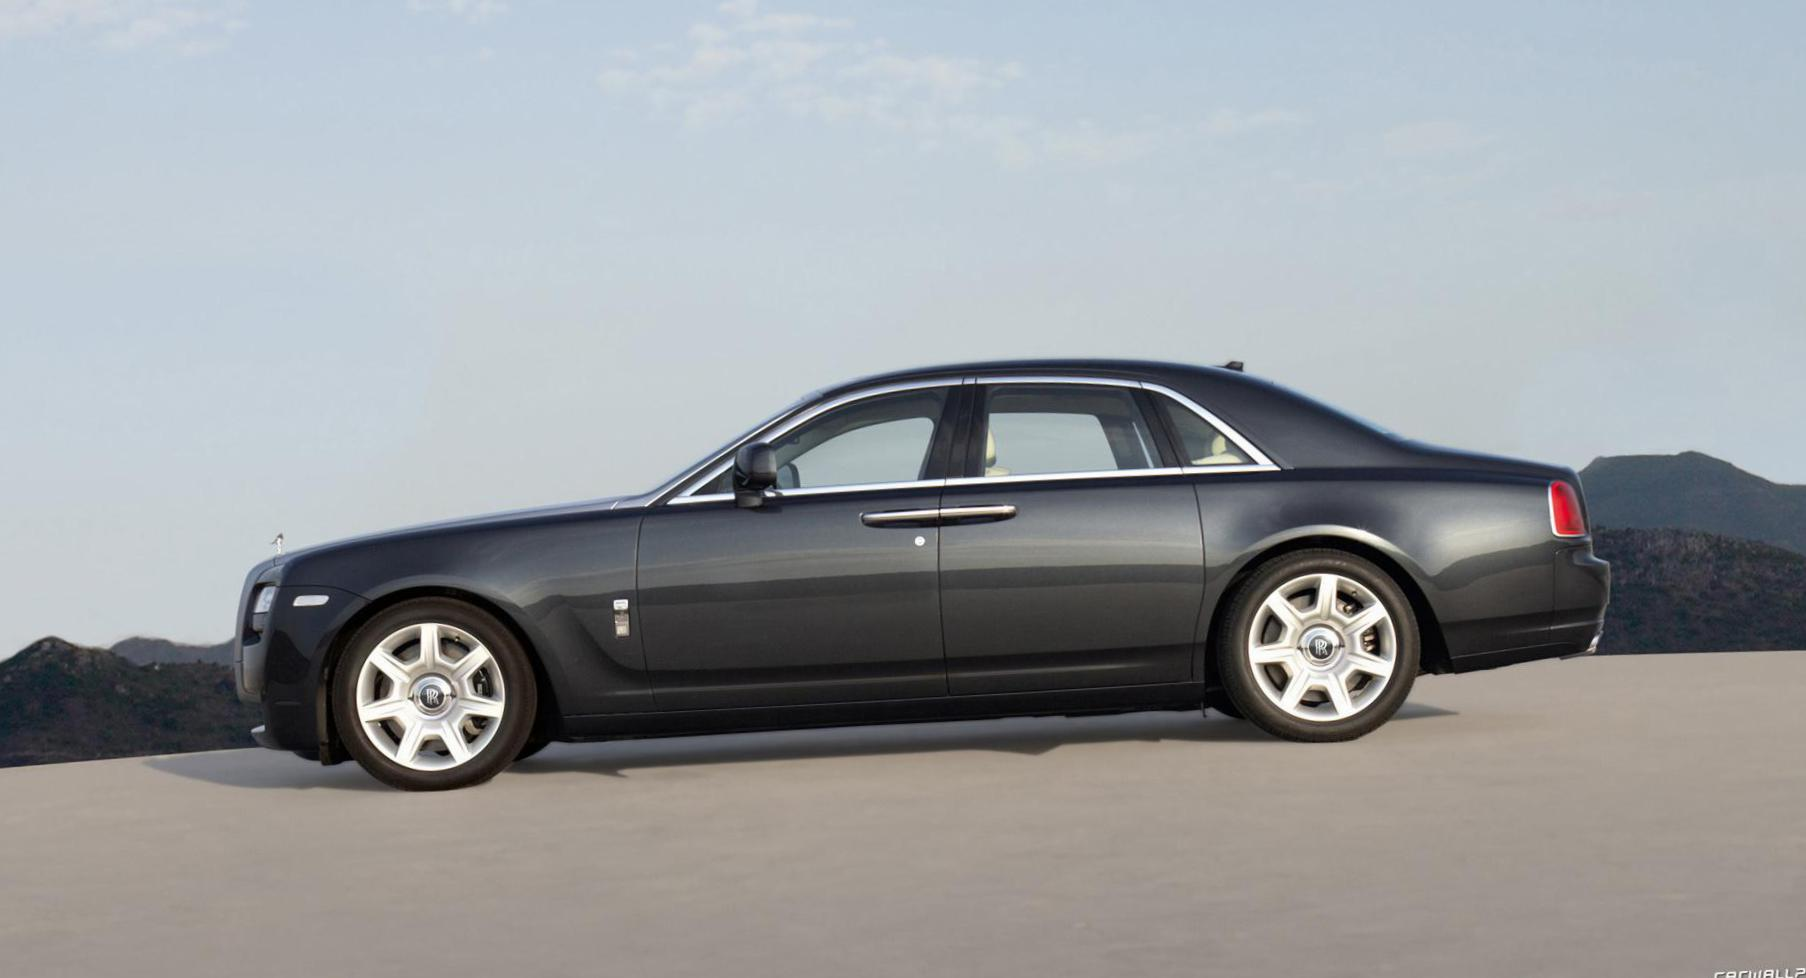 Ghost Rolls-Royce parts 2007